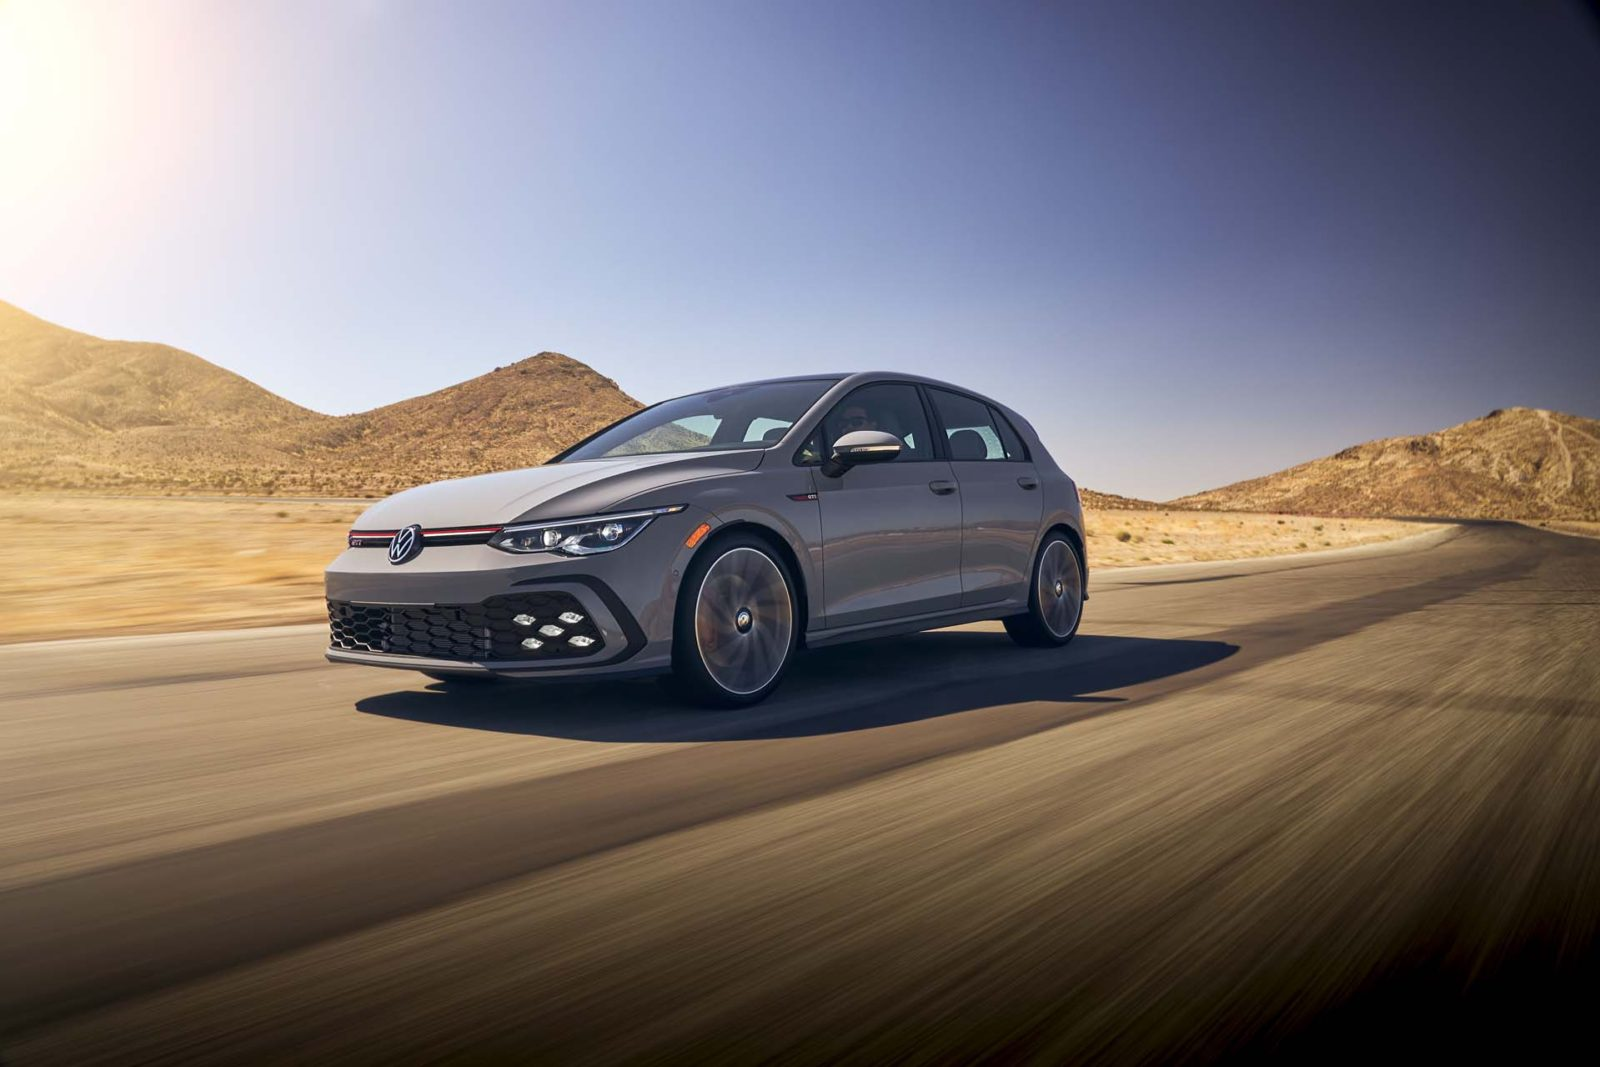 2022-volkswagen-golf-gti-costs-about-$1,000-more-at-$30,540